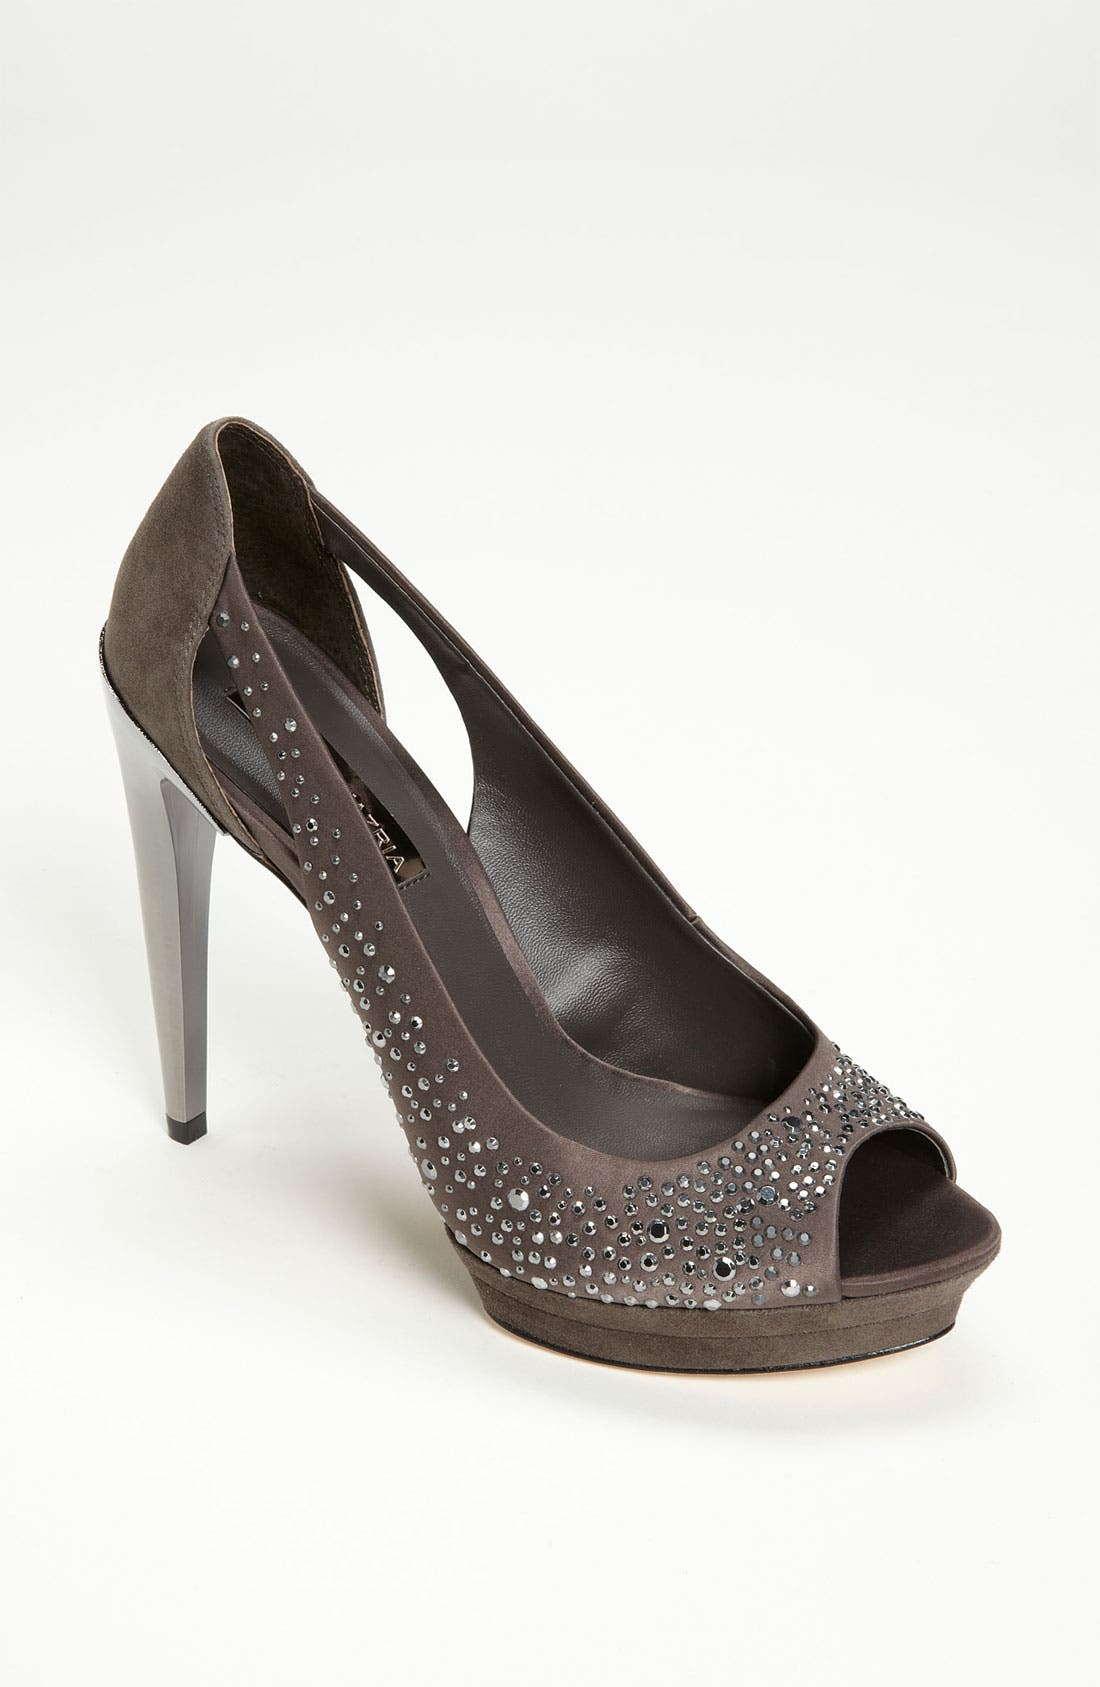 Alternate Image 1 Selected - BCBGMAXAZRIA 'Dester' Pump